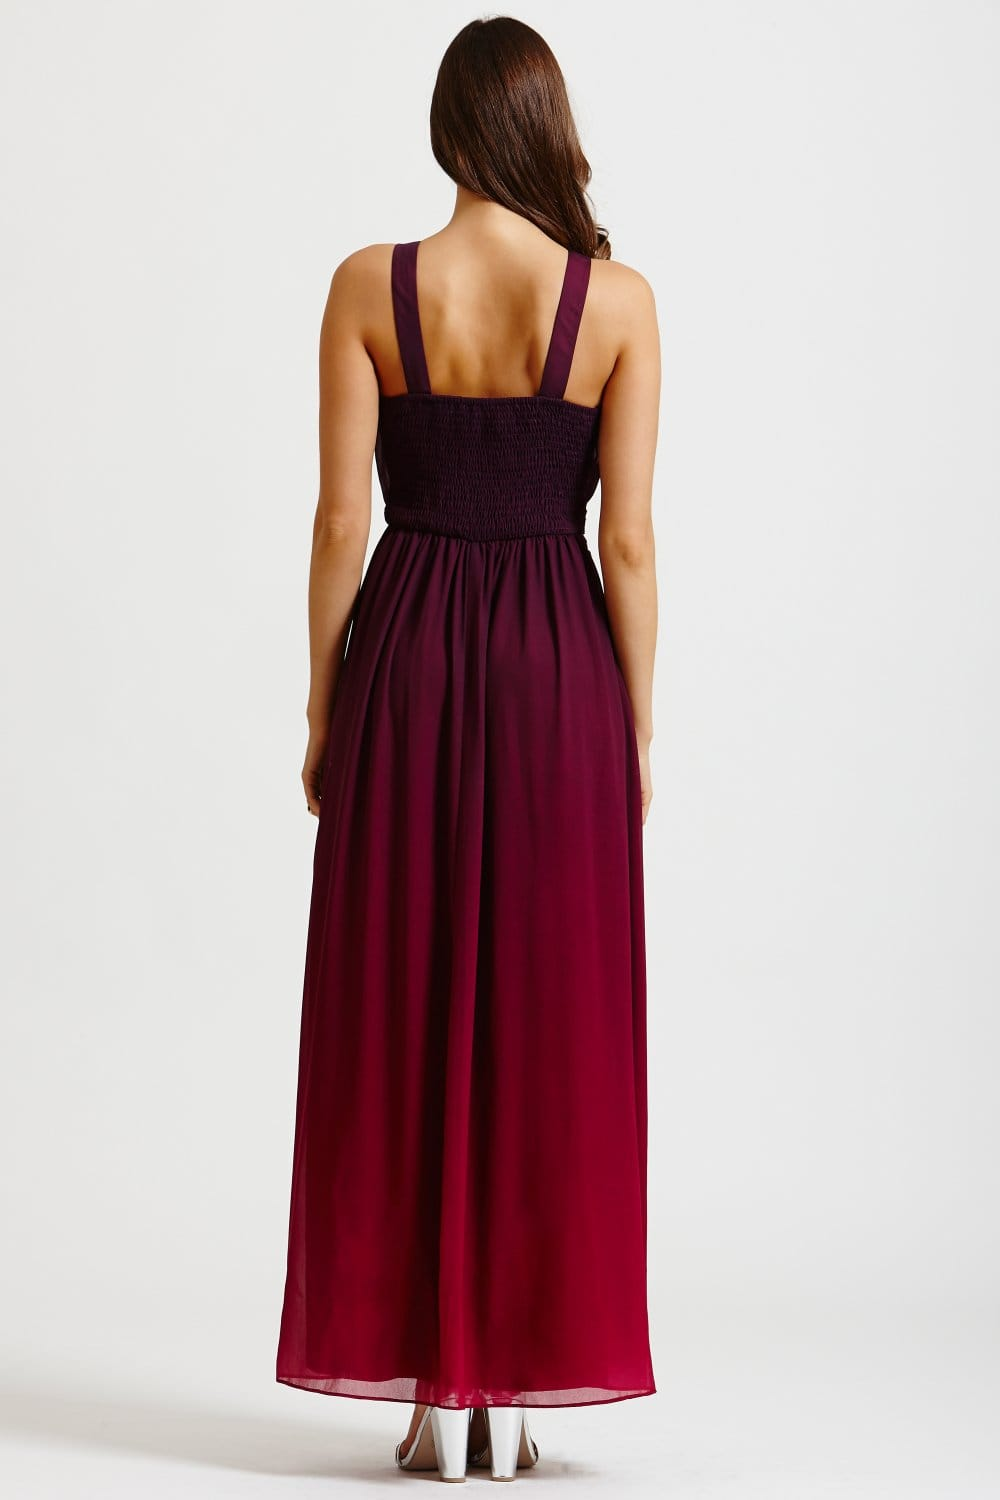 Little Mistress Two Tone Pink And Purple Embellished Maxi